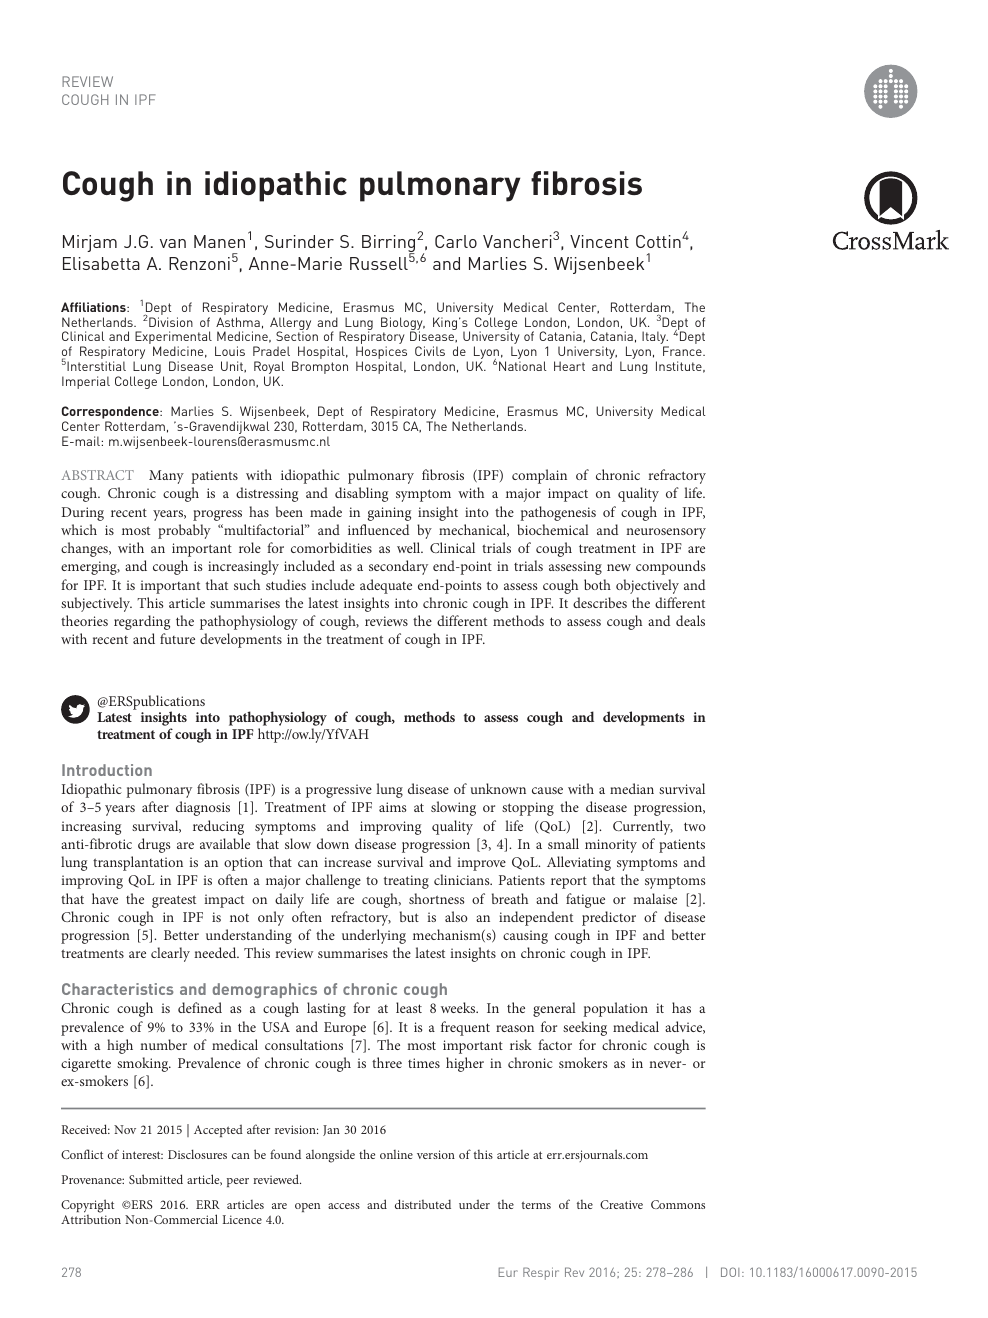 Cough in idiopathic pulmonary fibrosis – topic of research